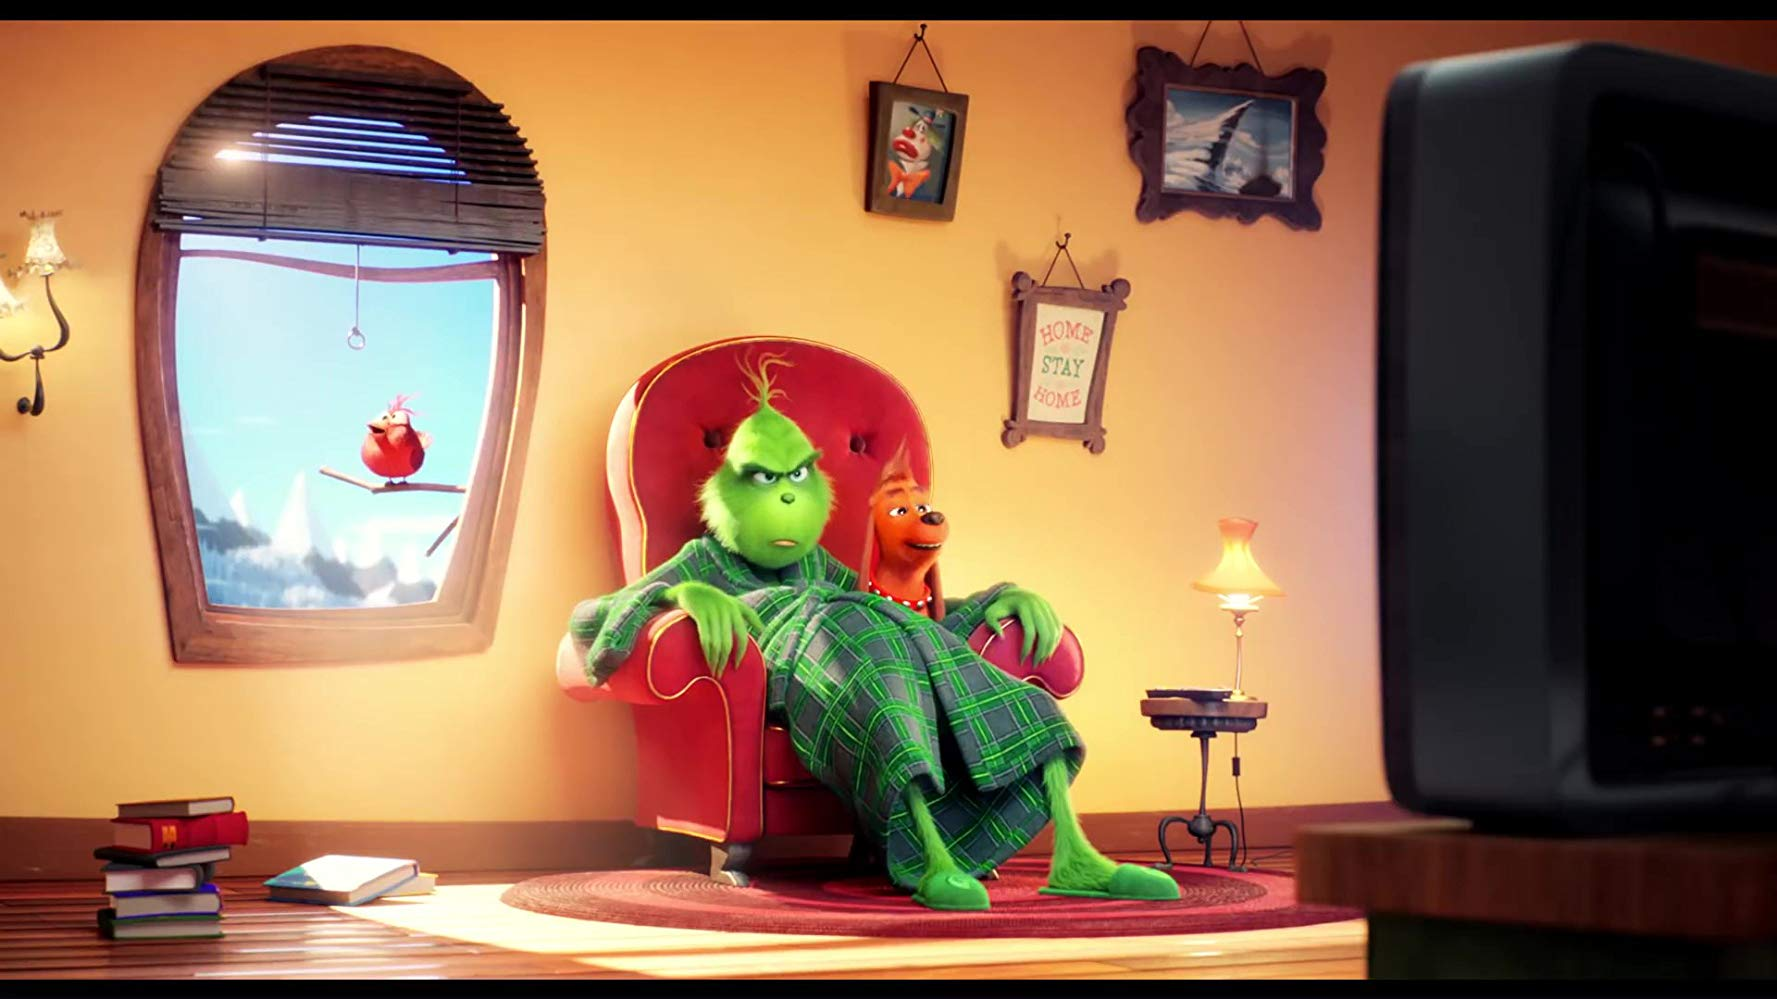 The Grinch in his chair